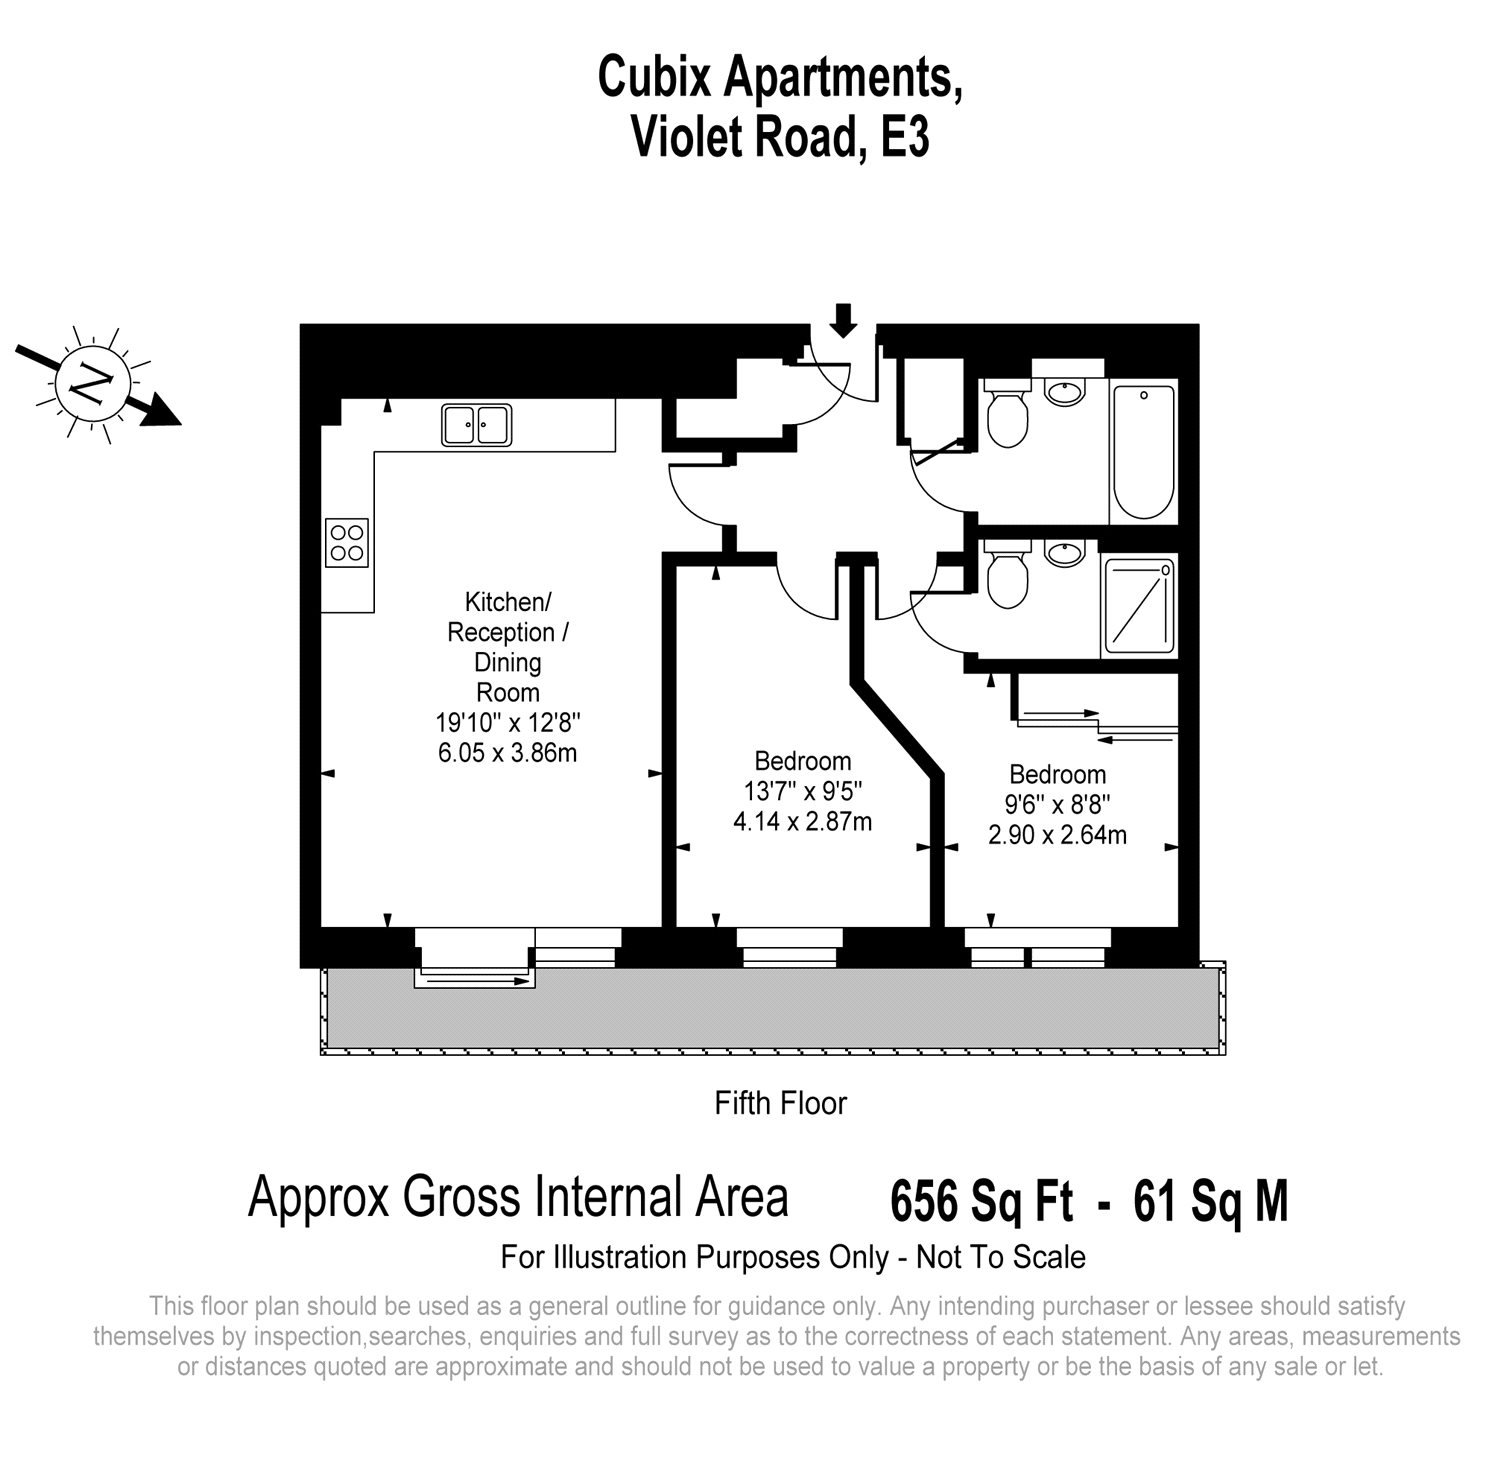 Cubix Apartments, 42 Violet Road, London, E3 floorplan